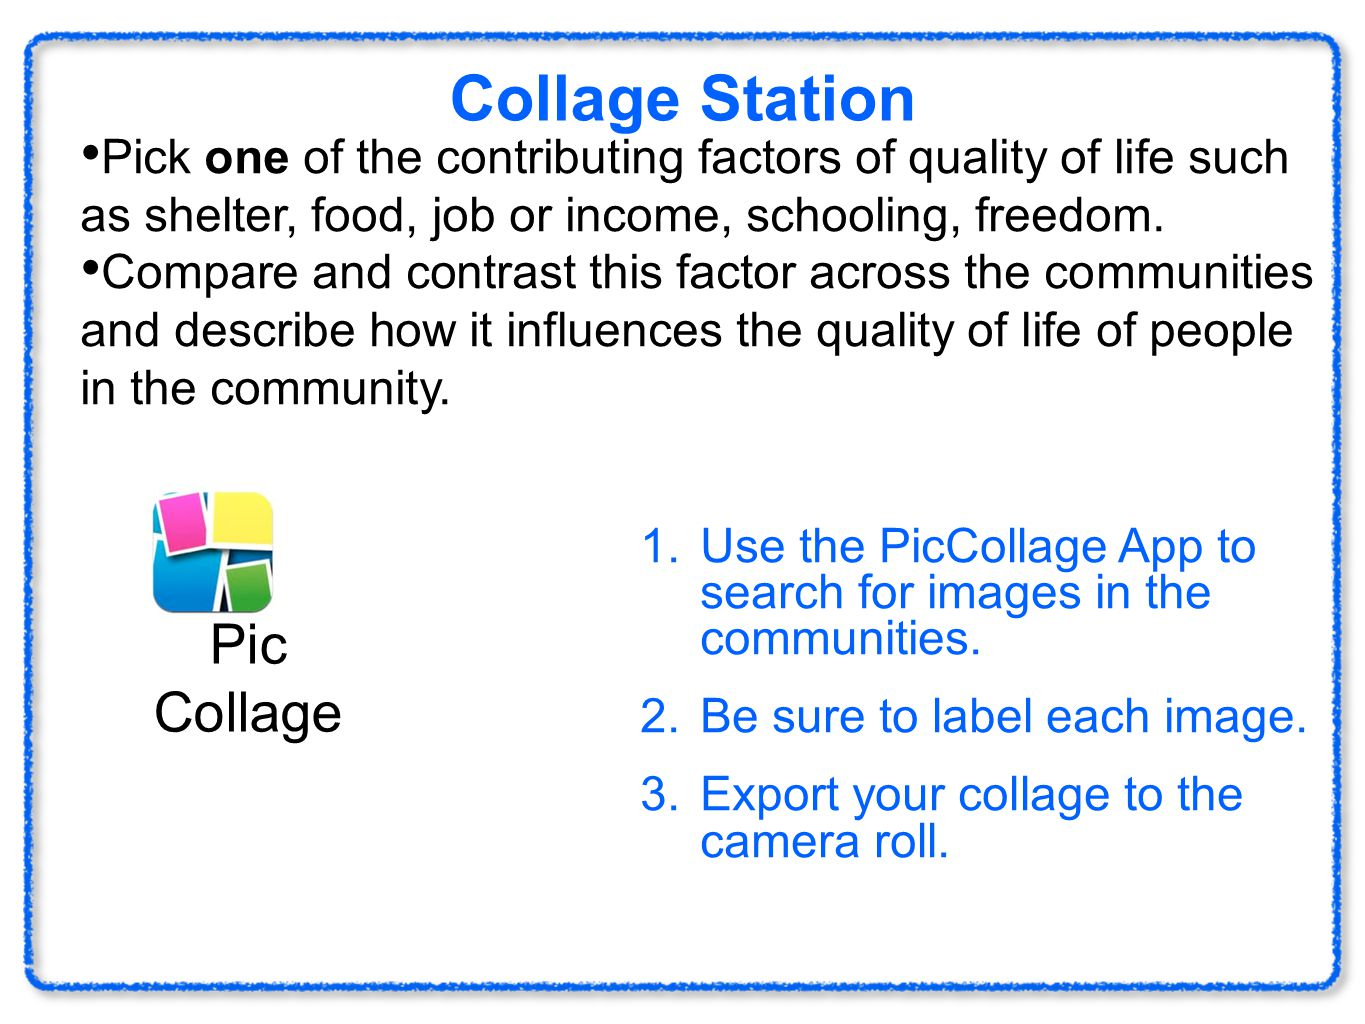 Collage Station Pick one of the contributing factors of quality of life such as shelter, food, job or income, schooling, freedom. Compare and contrast